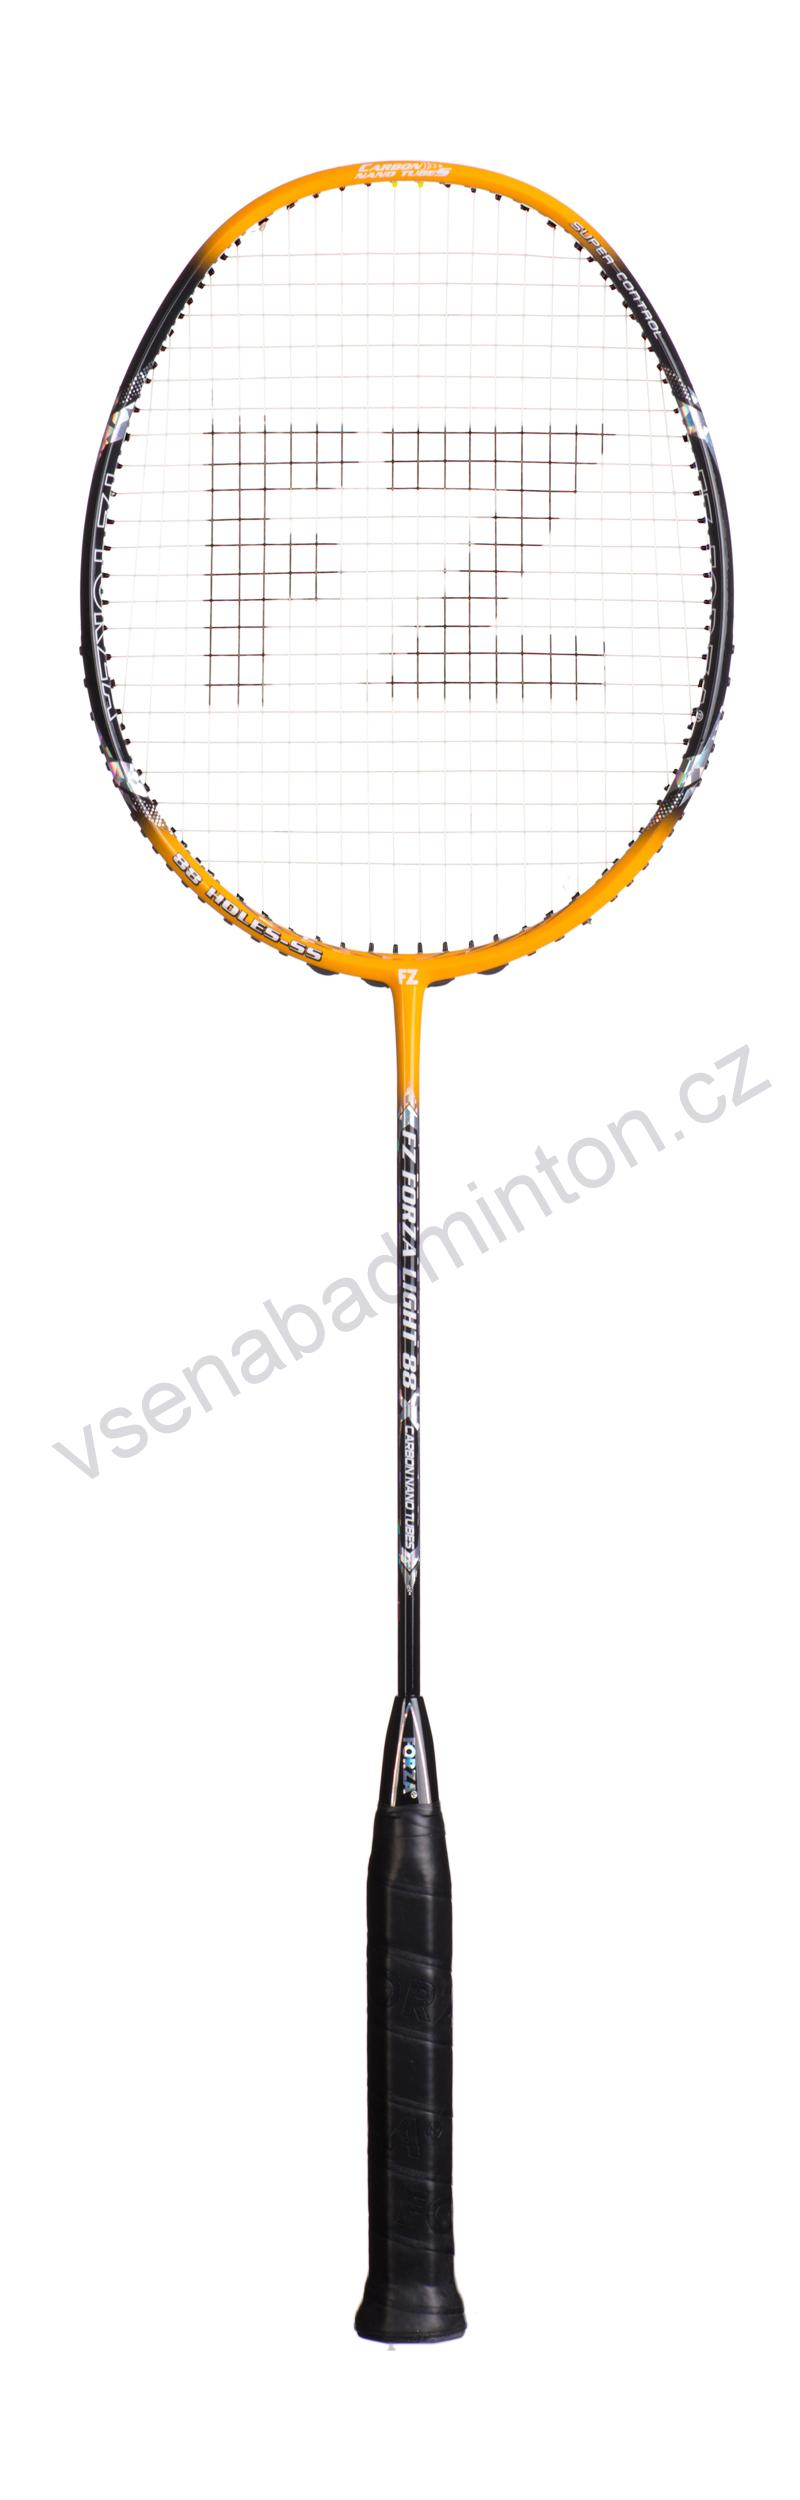 Badmintonová raketa FZ Forza Light 88